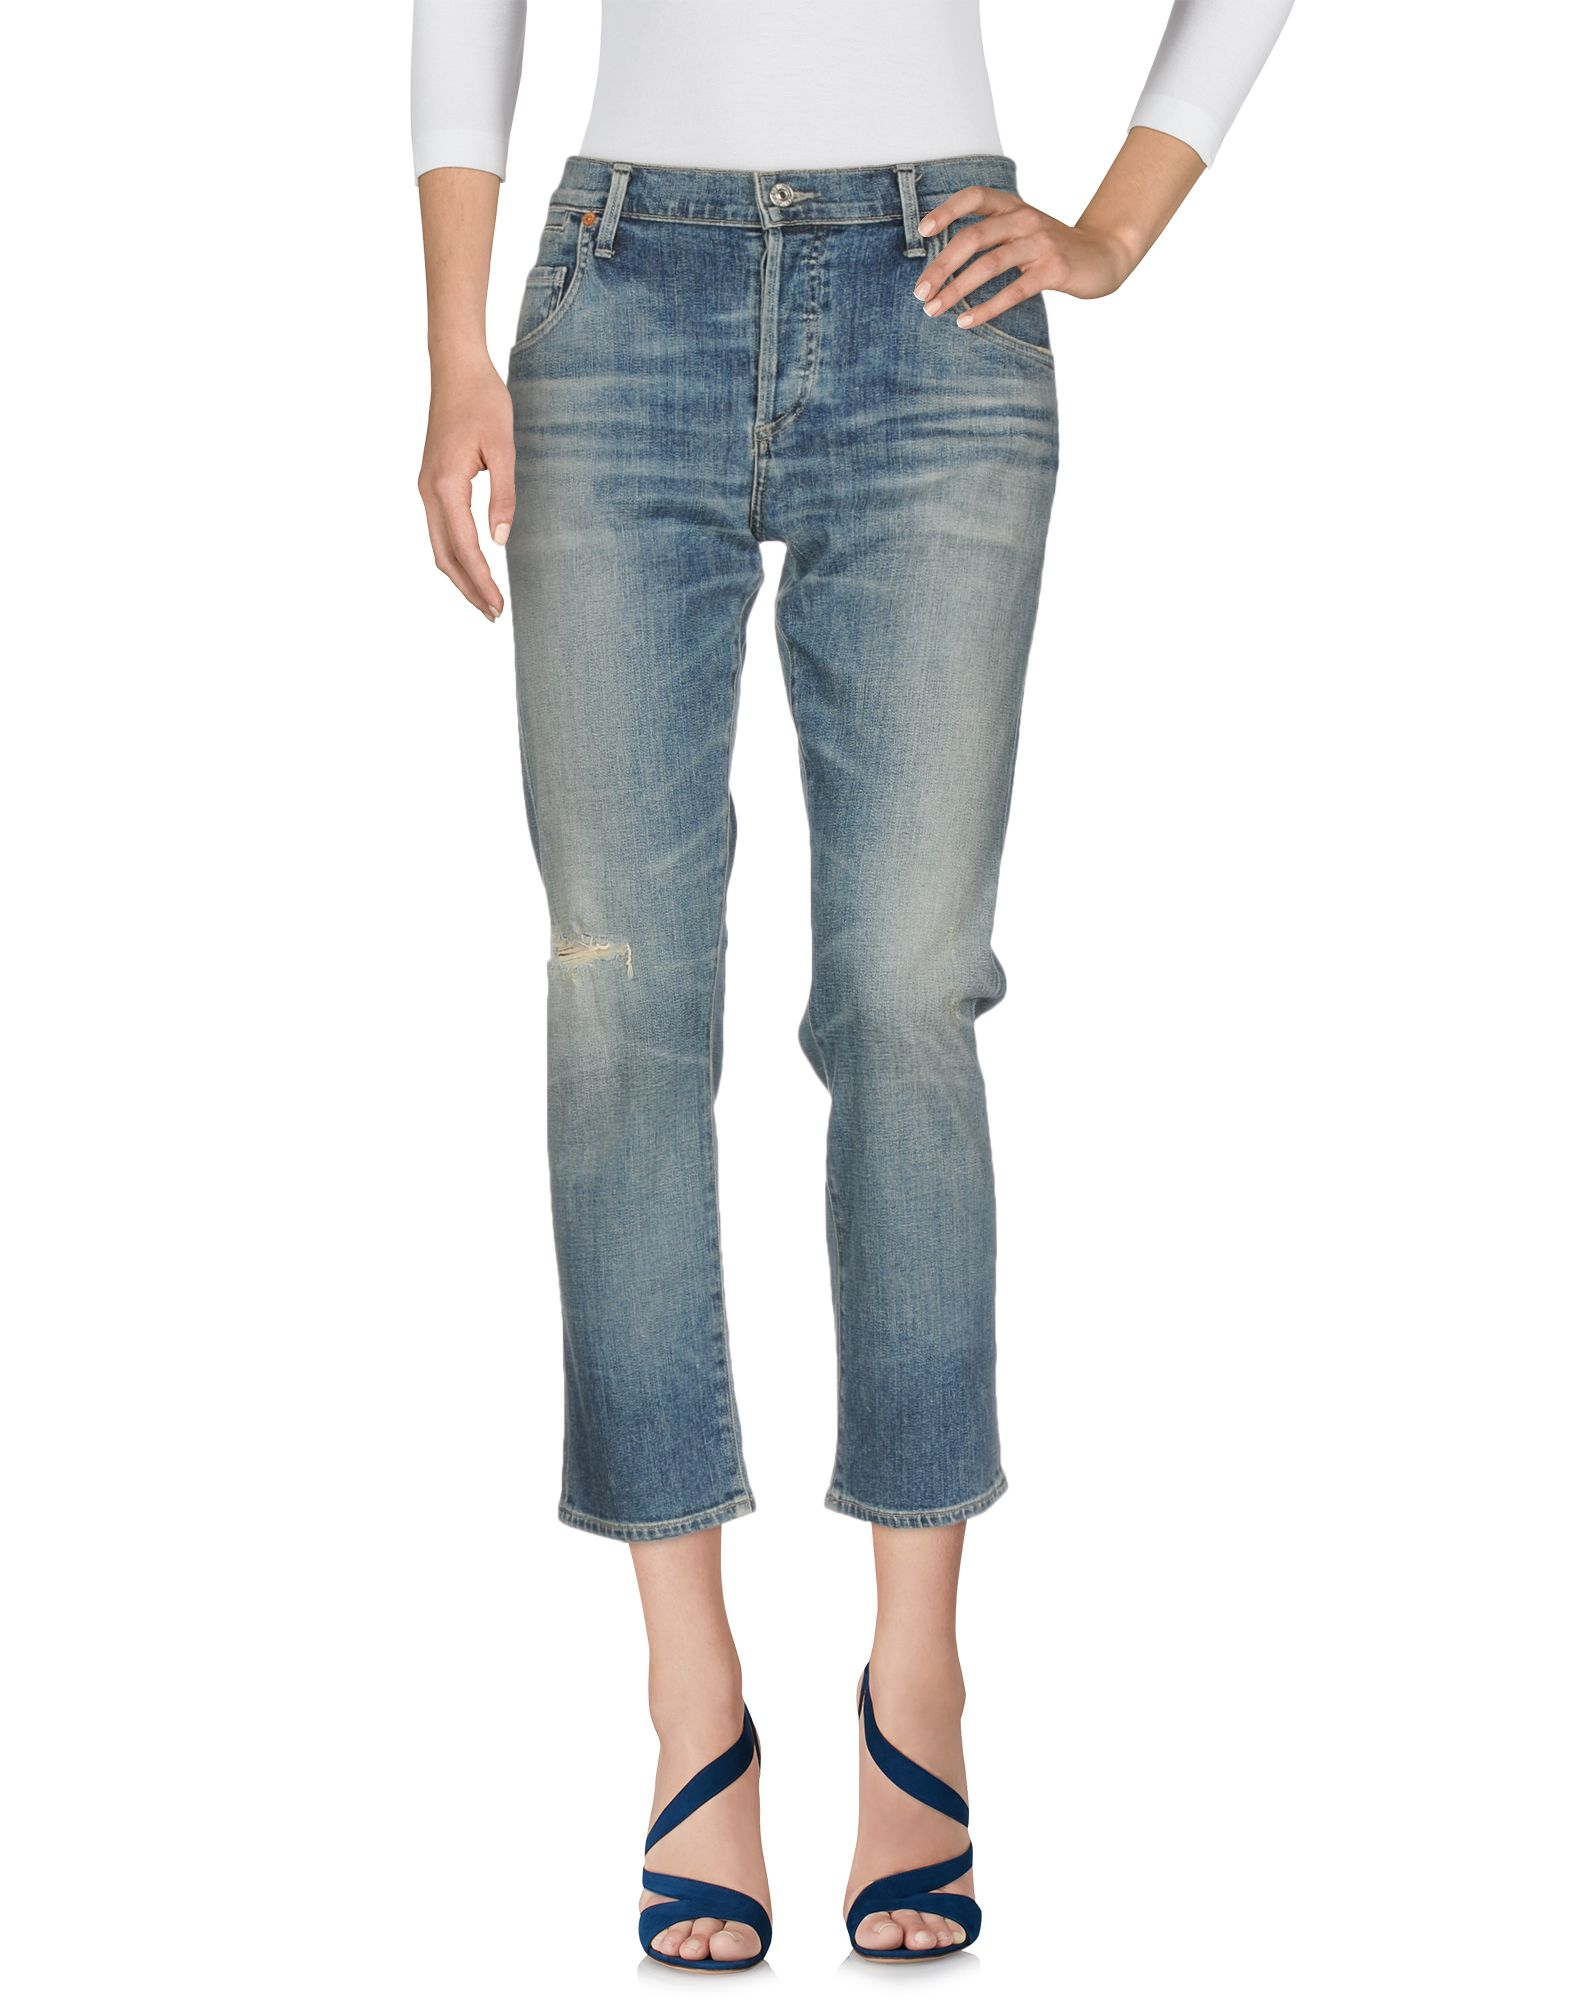 Pantaloni Jeans Citizens Of Humanity Donna - Acquista online su NMUjwcb